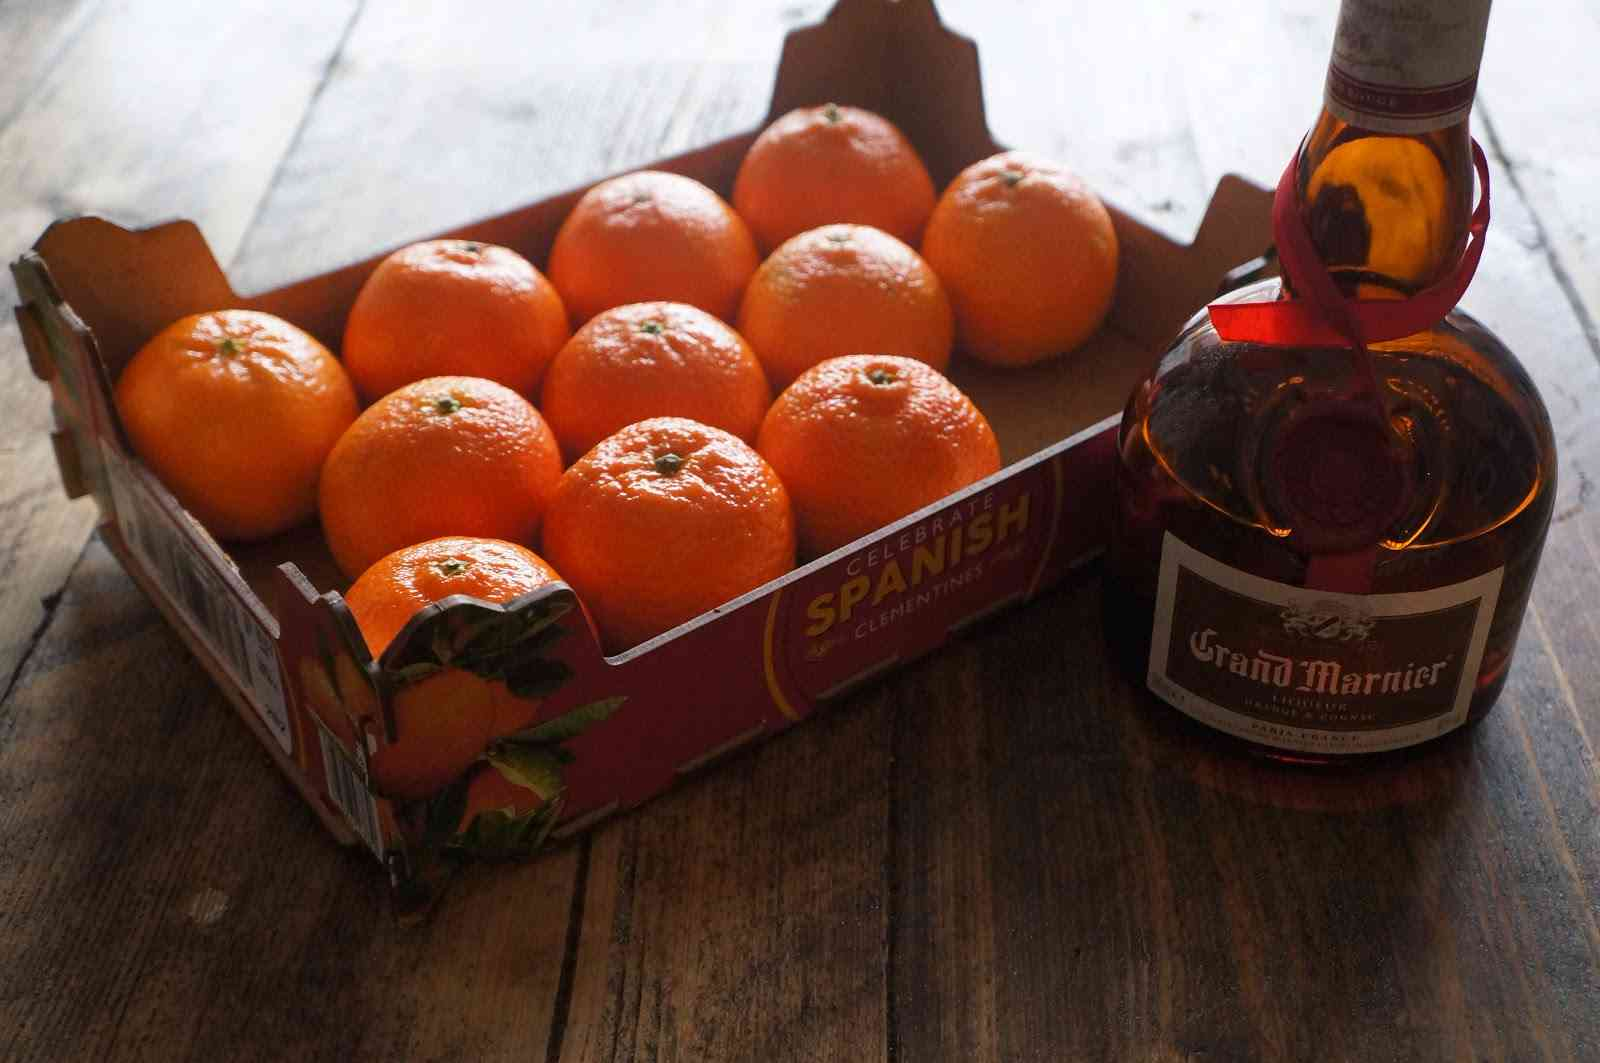 Clementines and Grand Marnier